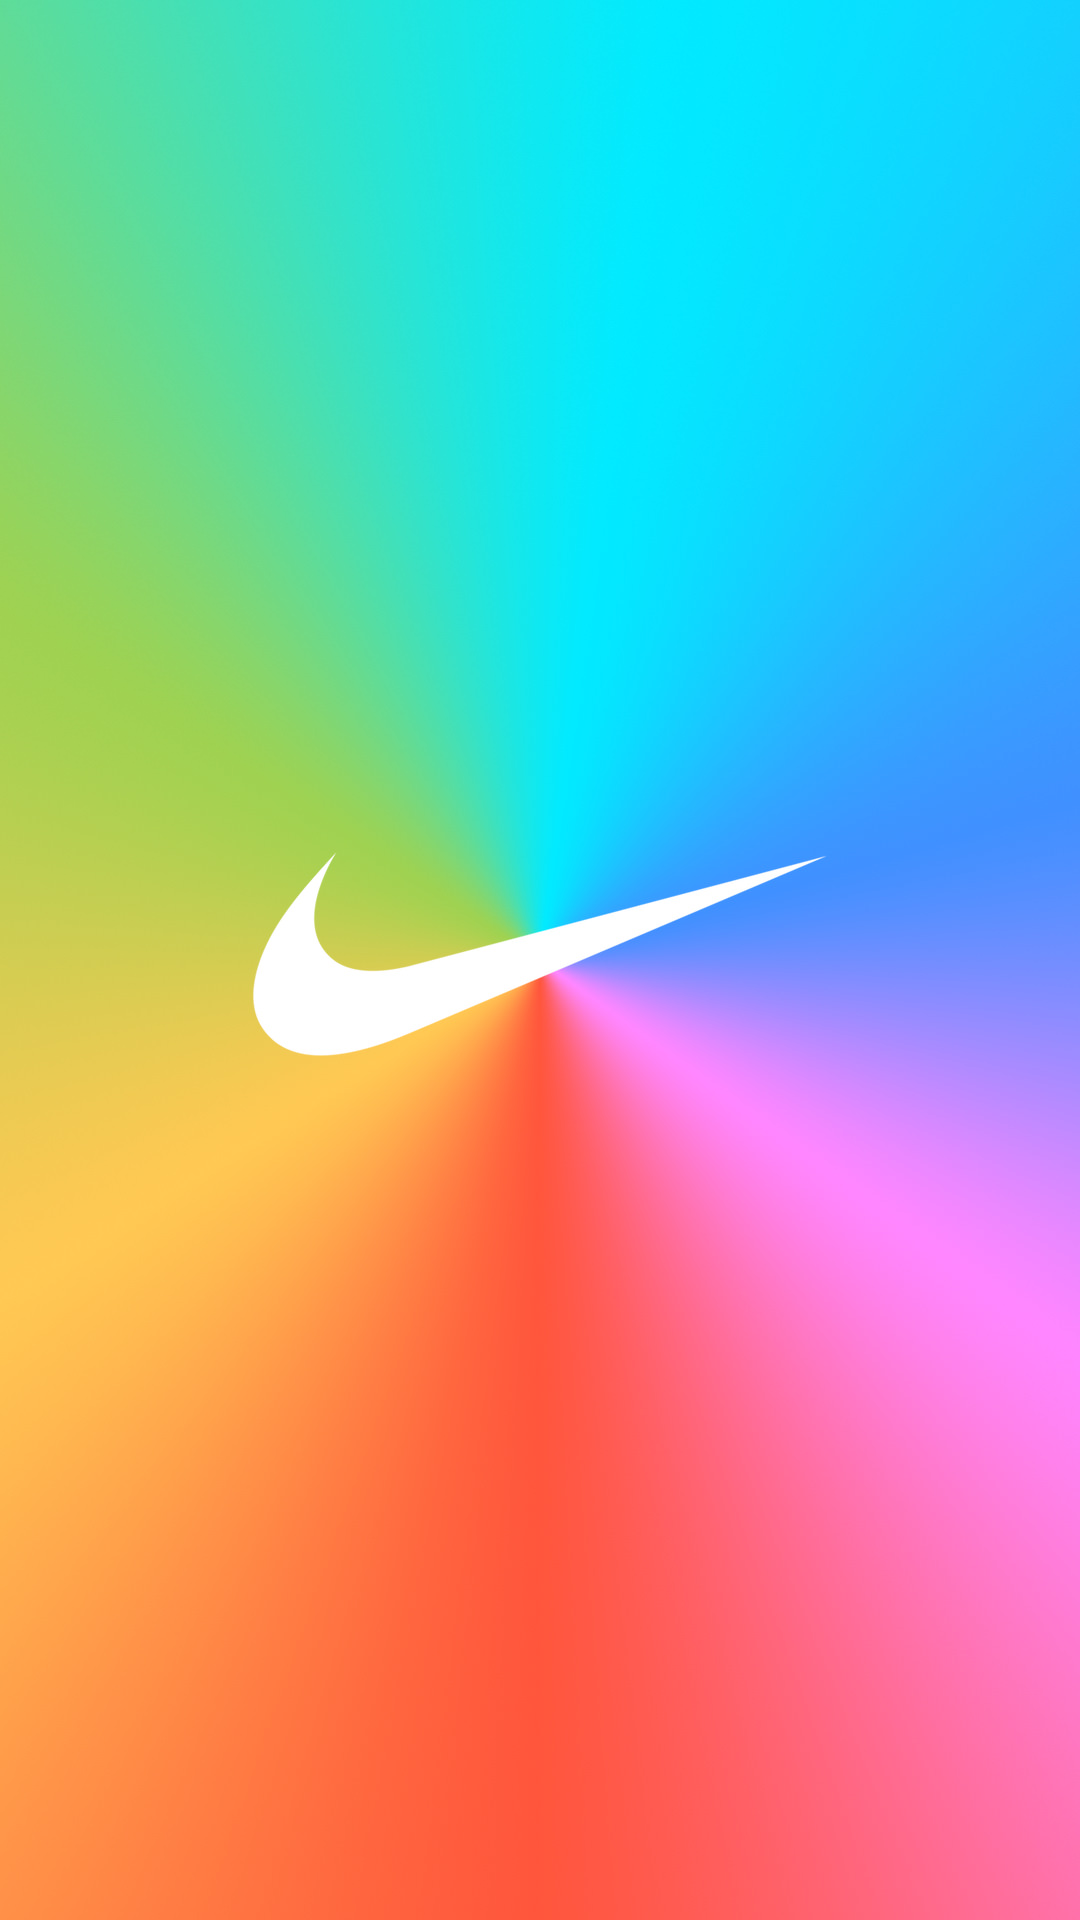 nike35 - 37 NIKE HQ Smartphone Wallpaper Collection